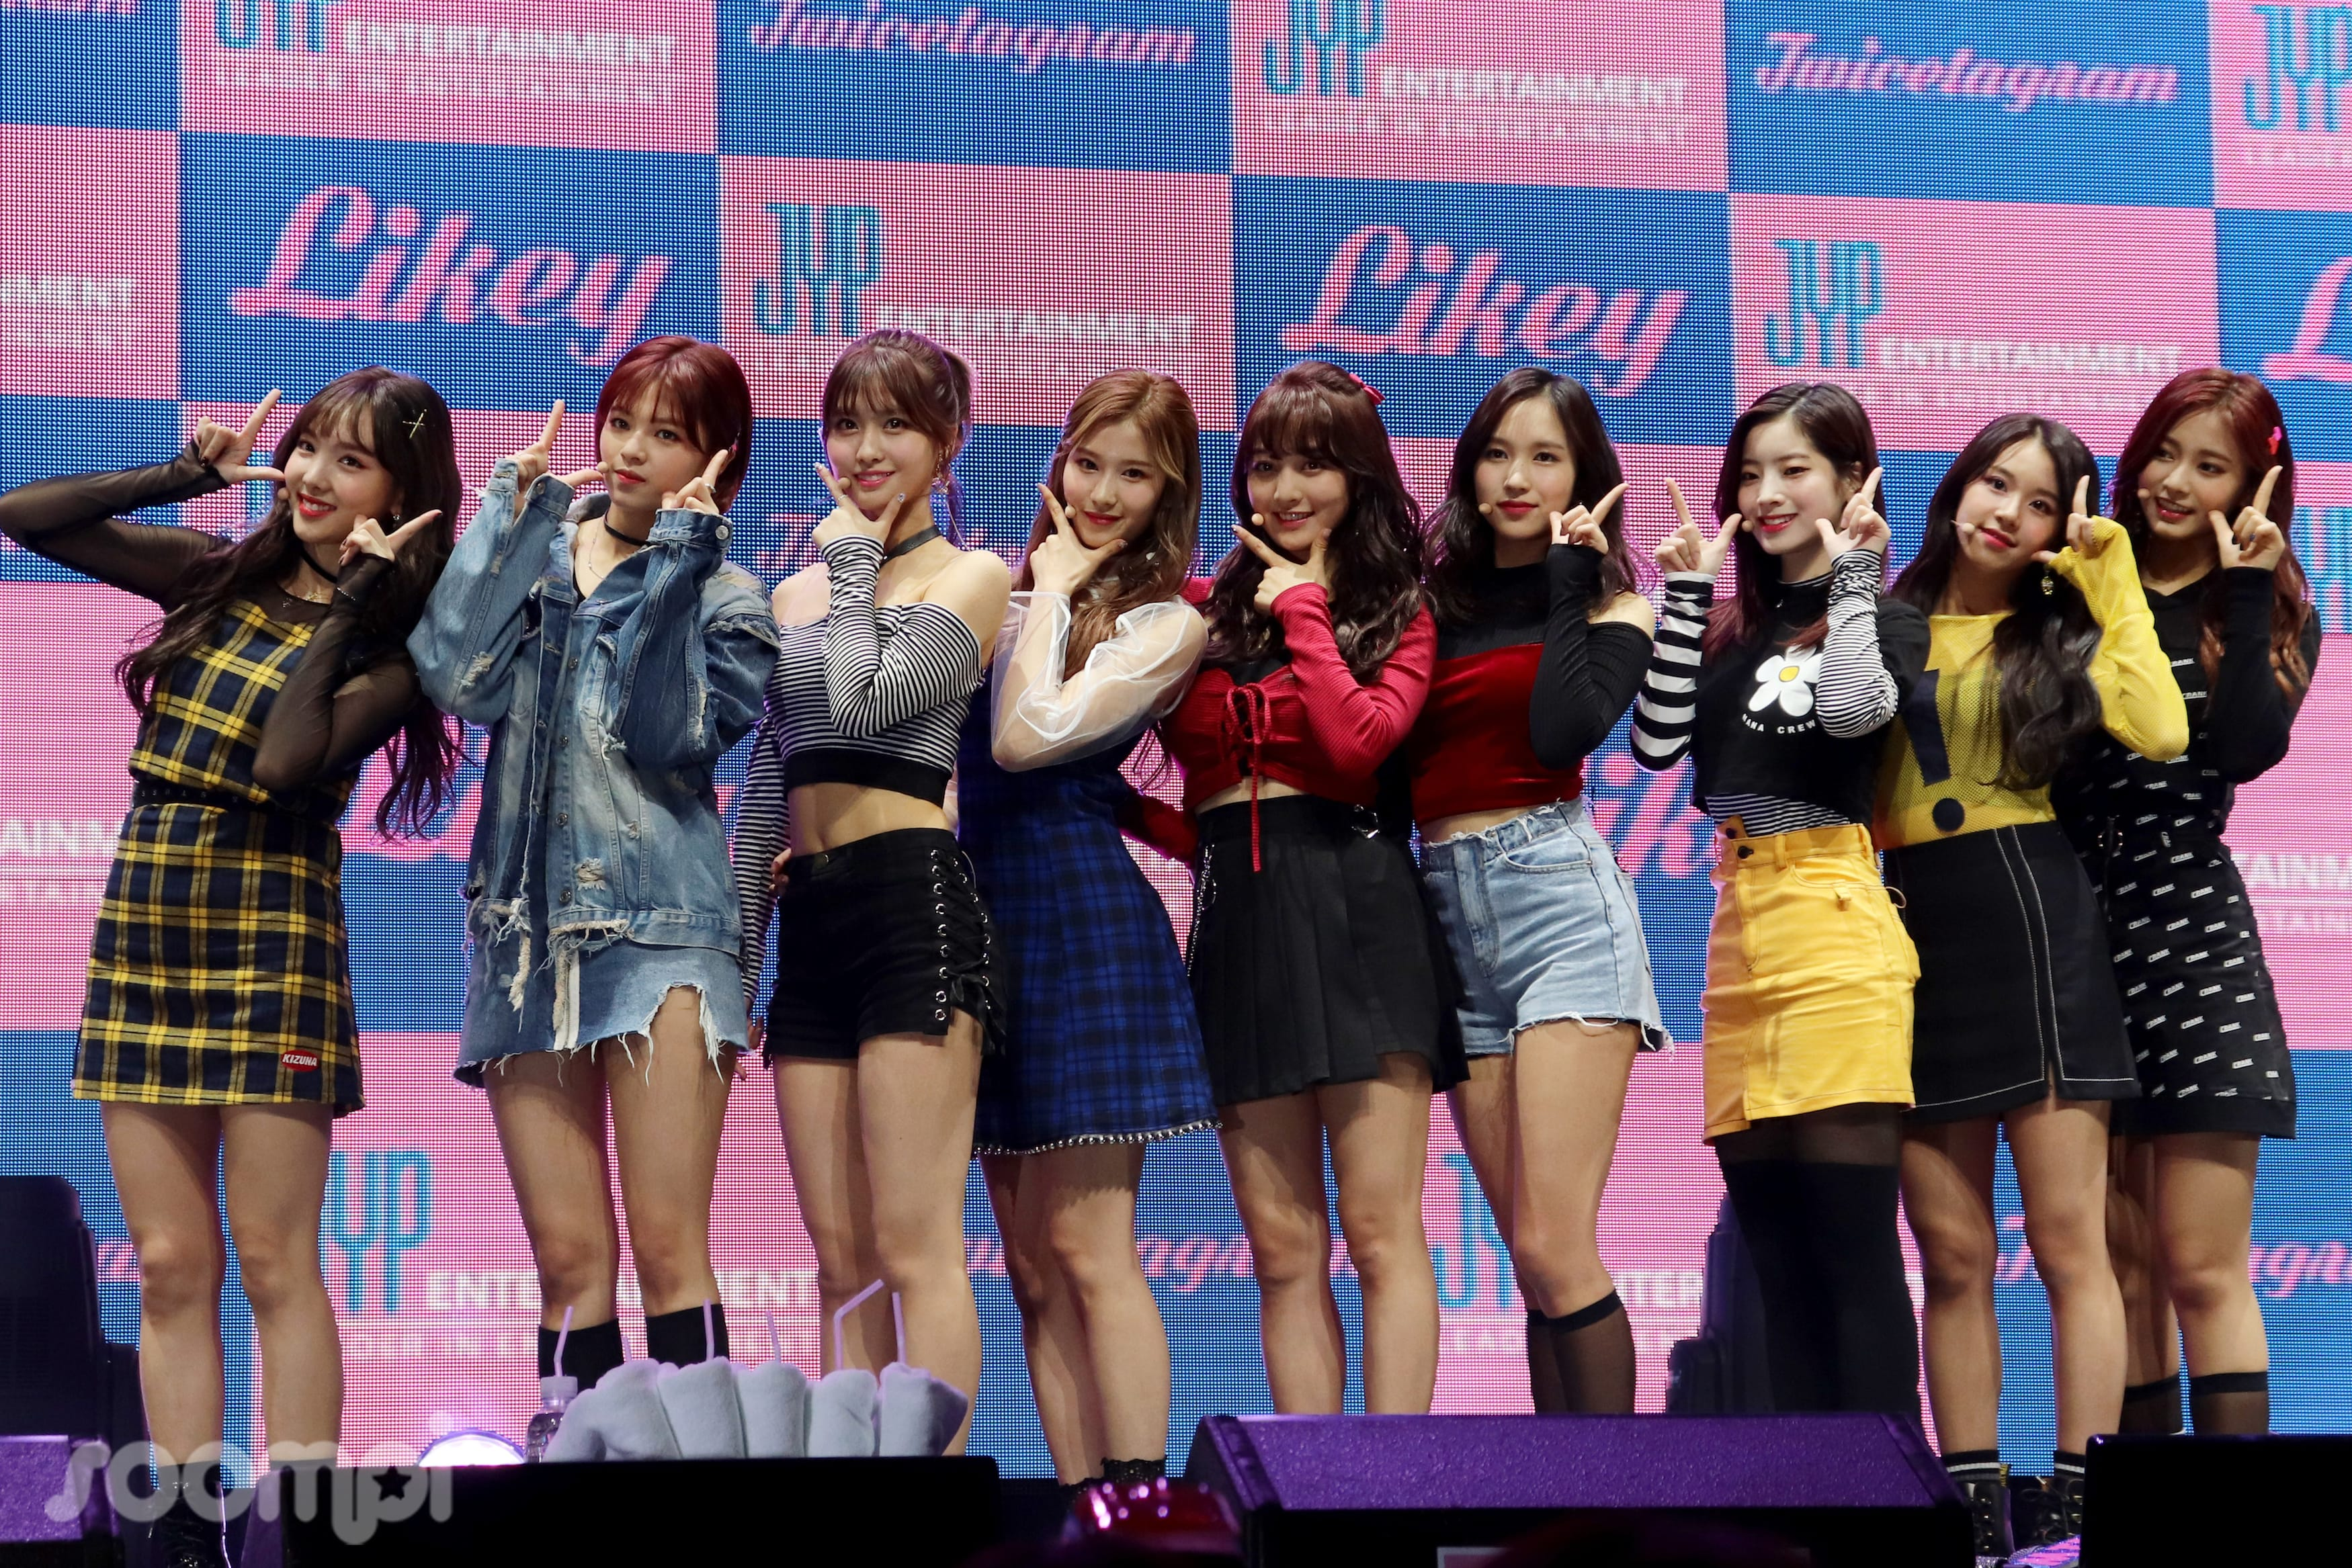 Exclusive Twice Reveals Their Goals And Expresses Excitement For